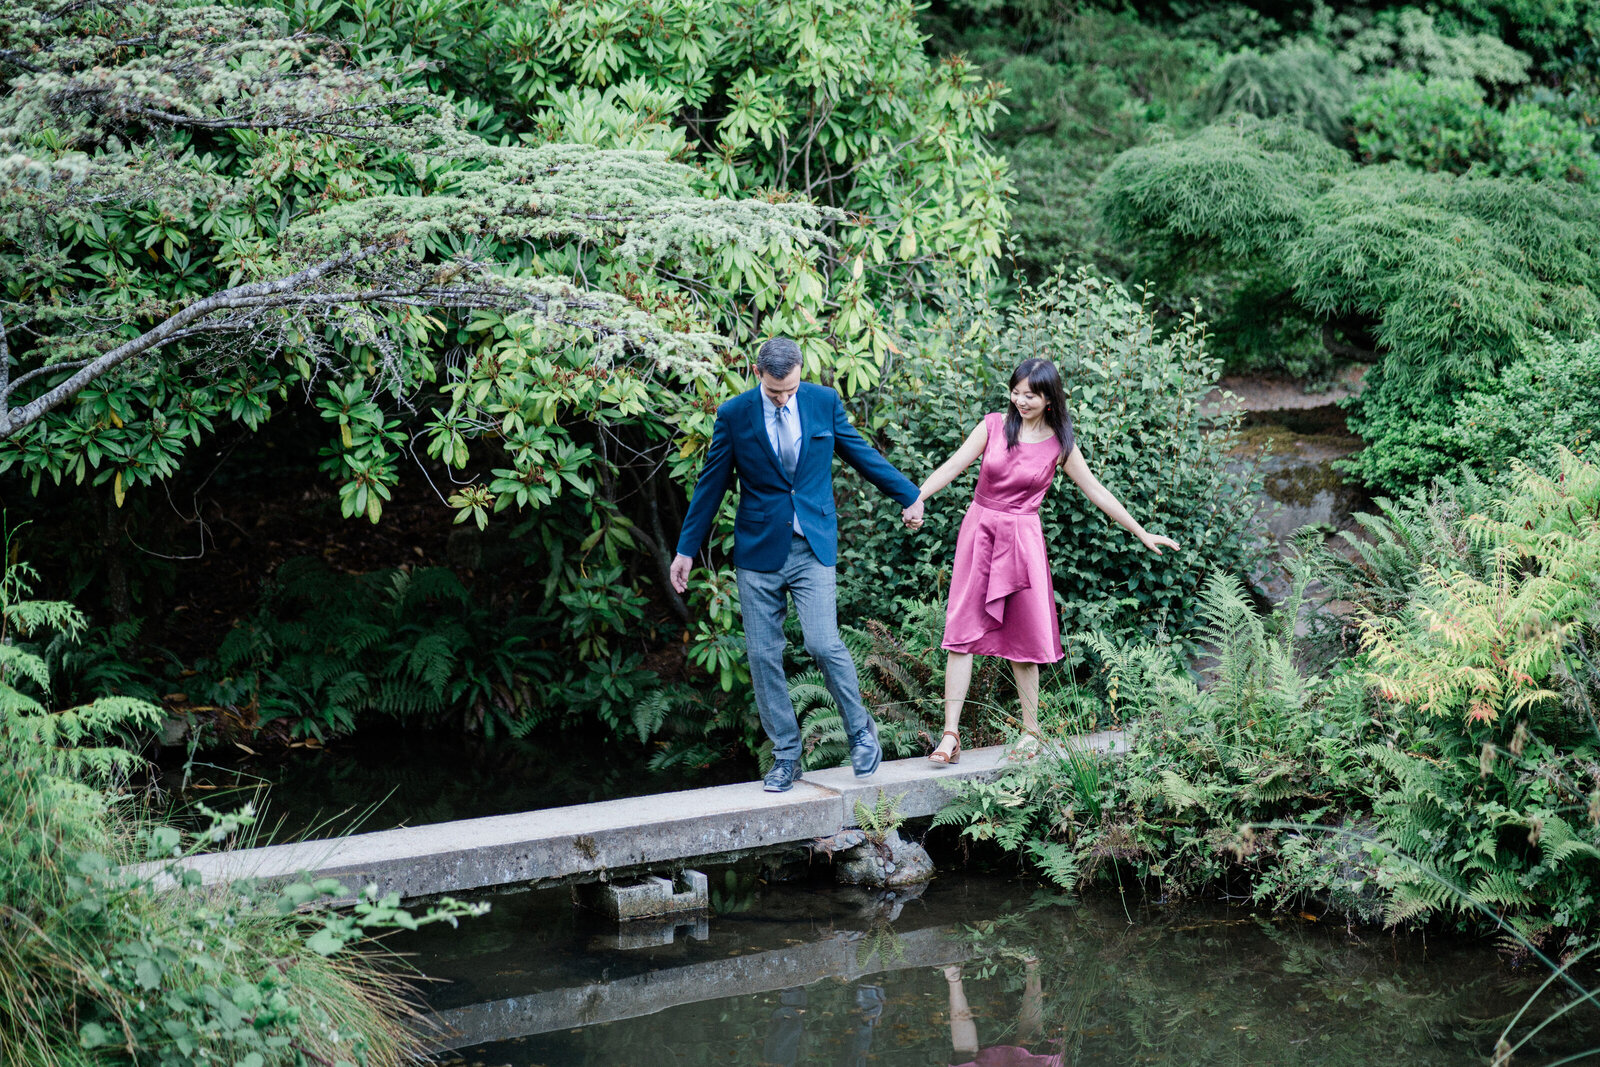 Husband and wife walk across pond at Kubota Garden, romantic place for engagement pictures in Seattle